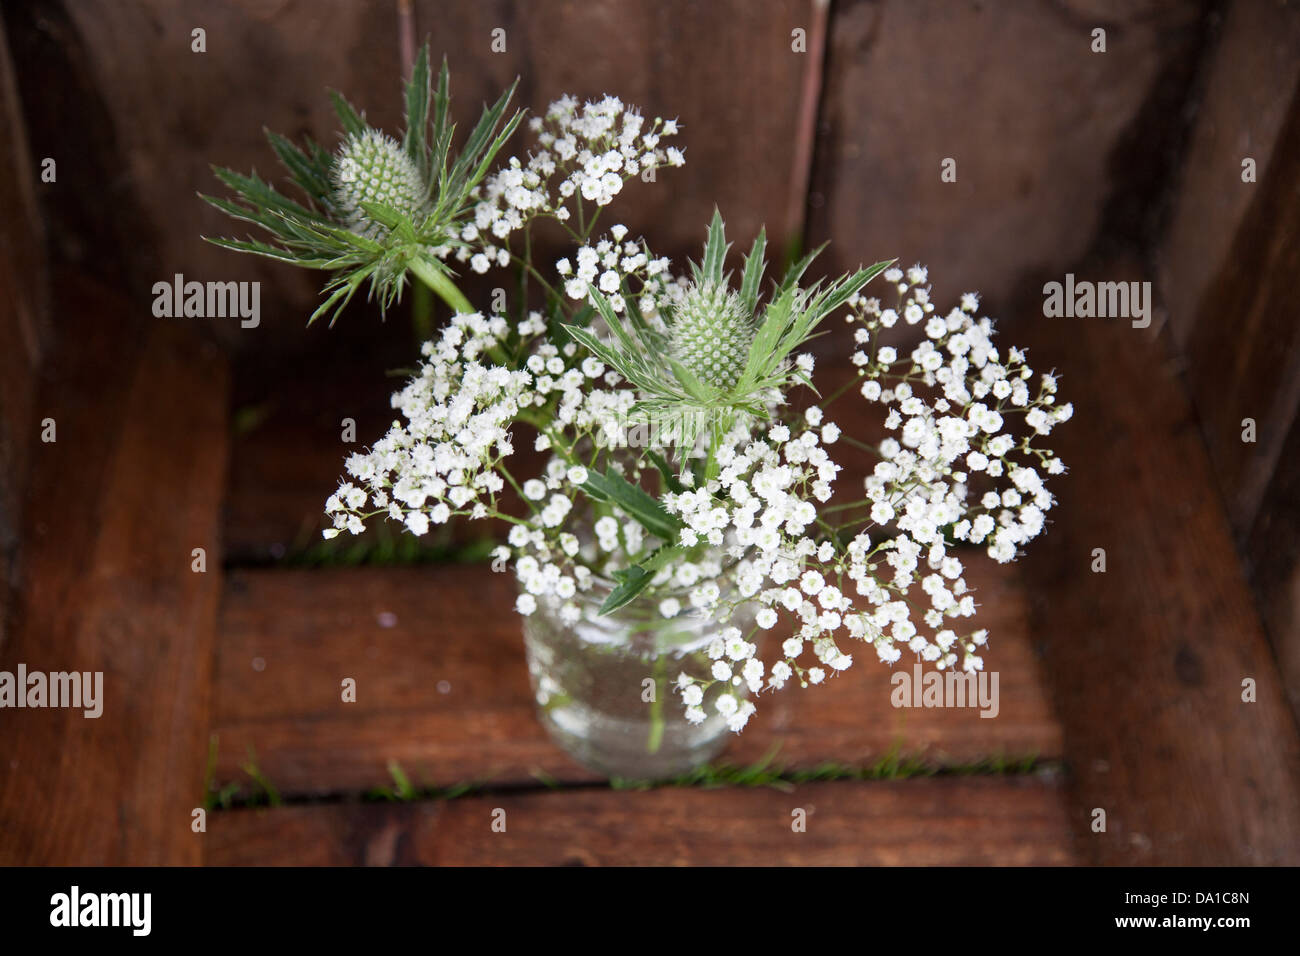 Gathered Flowers Stock Photos Gathered Flowers Stock Images Alamy